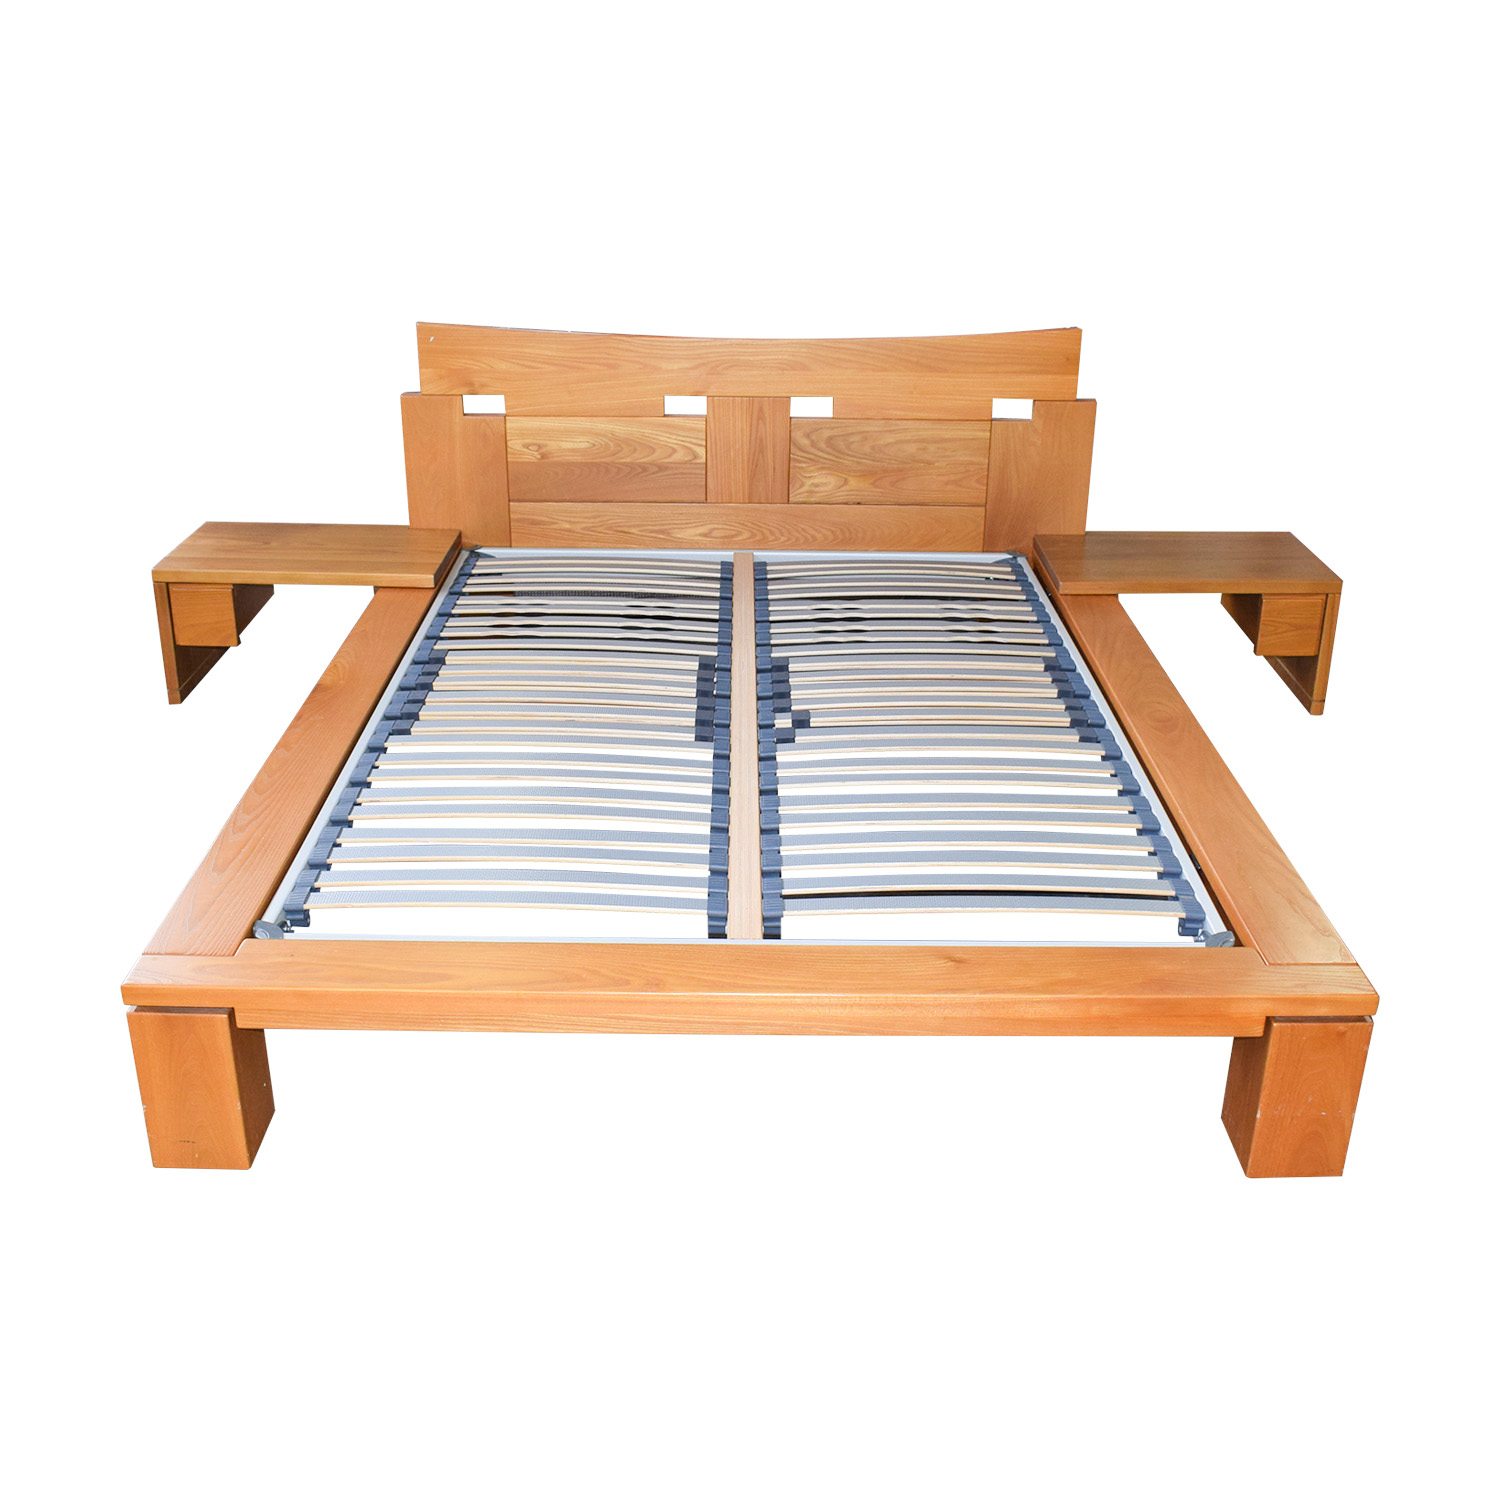 Roche Bobois Roche Bobois Wood Platform Full Bed Frame with End Tables coupon